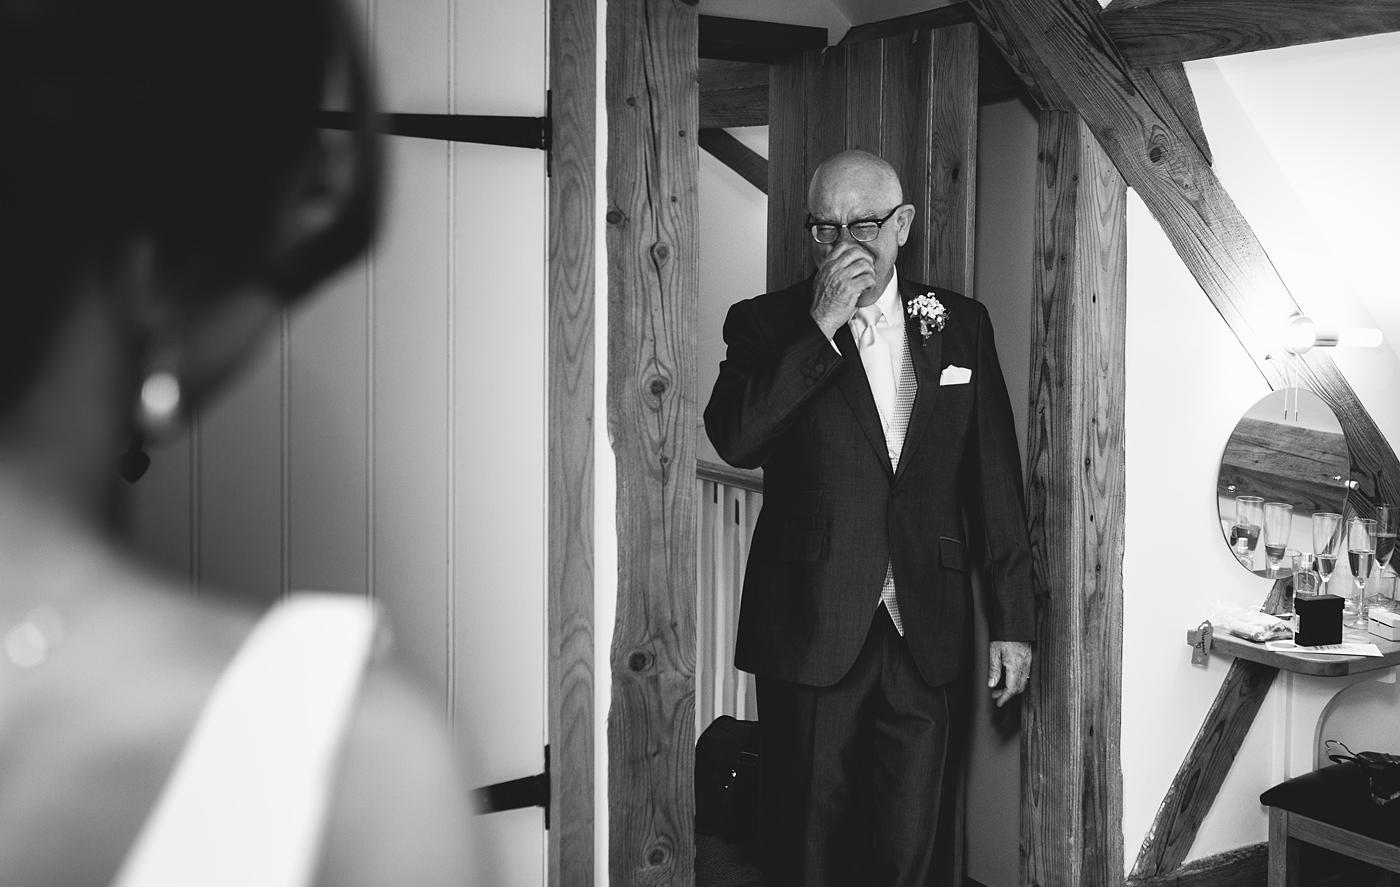 the father of the bride enters the room